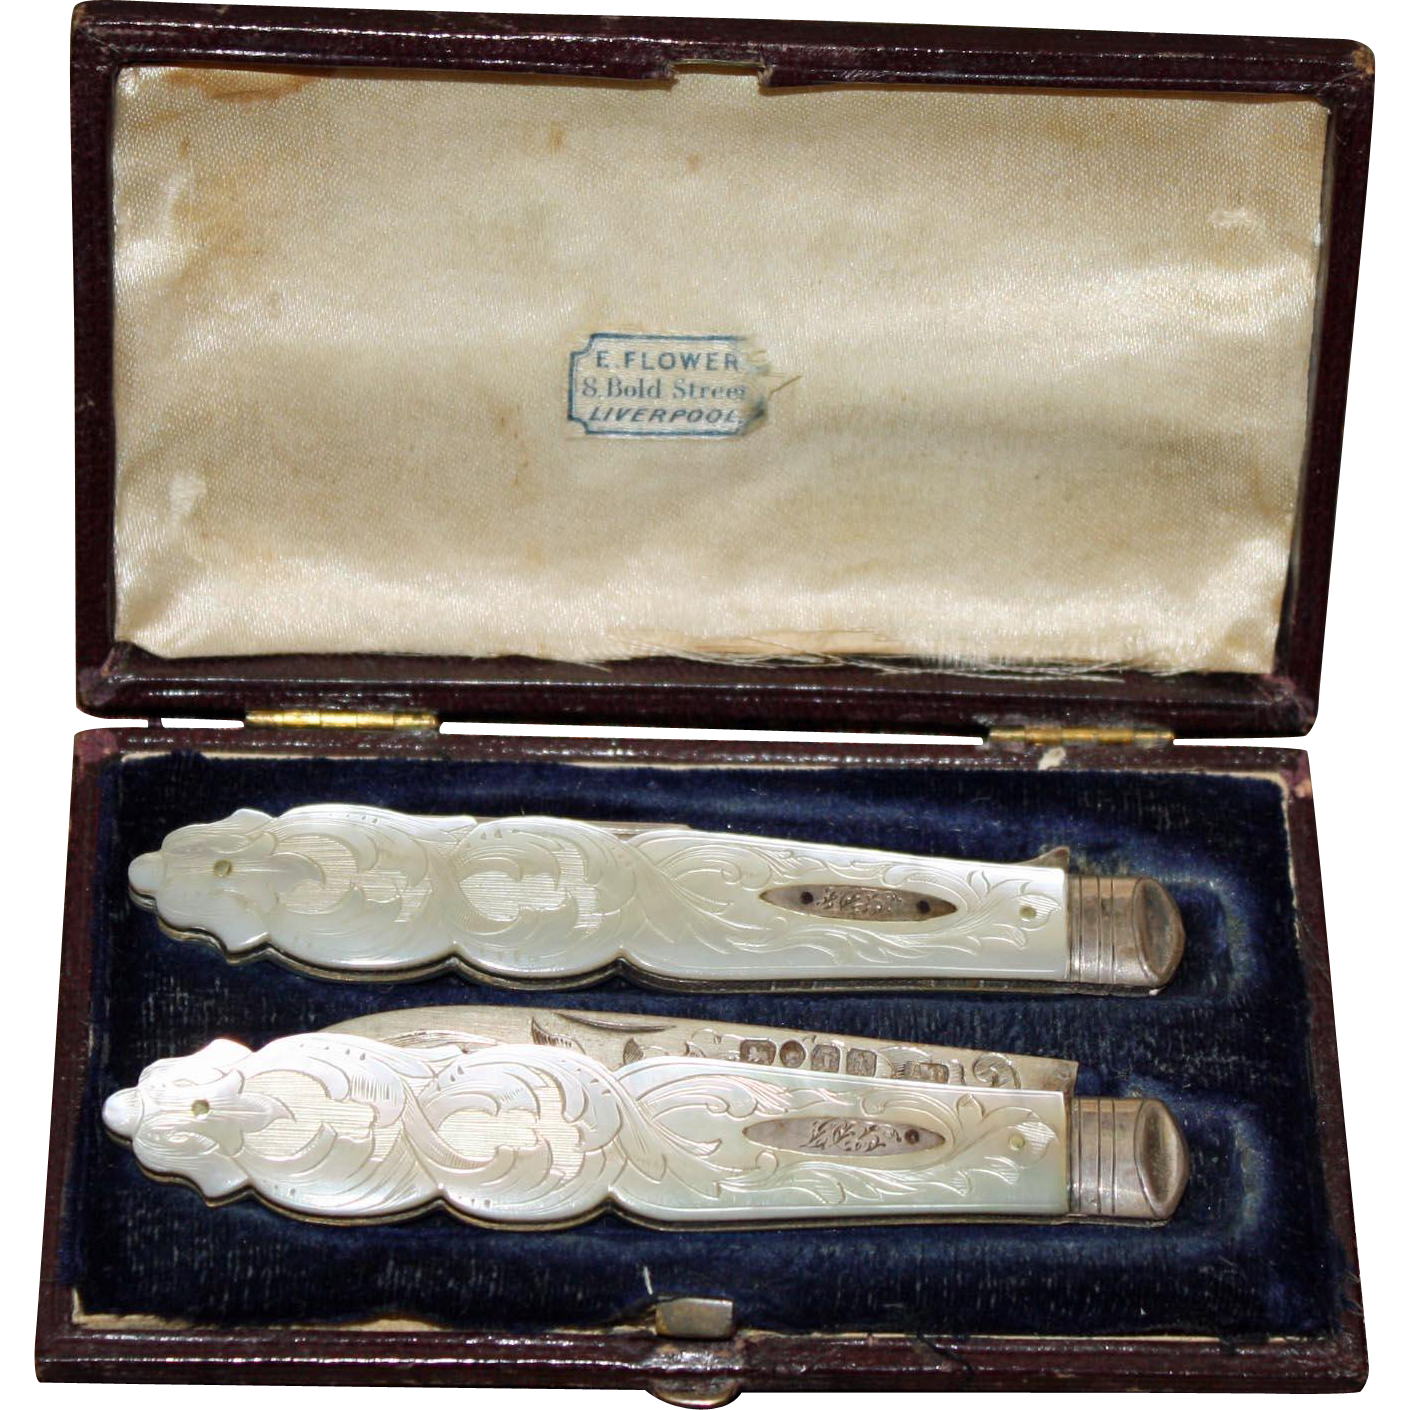 1858 Engraved Mother of Pearl Sterling Folding Knife & Fork Pair in Original Box